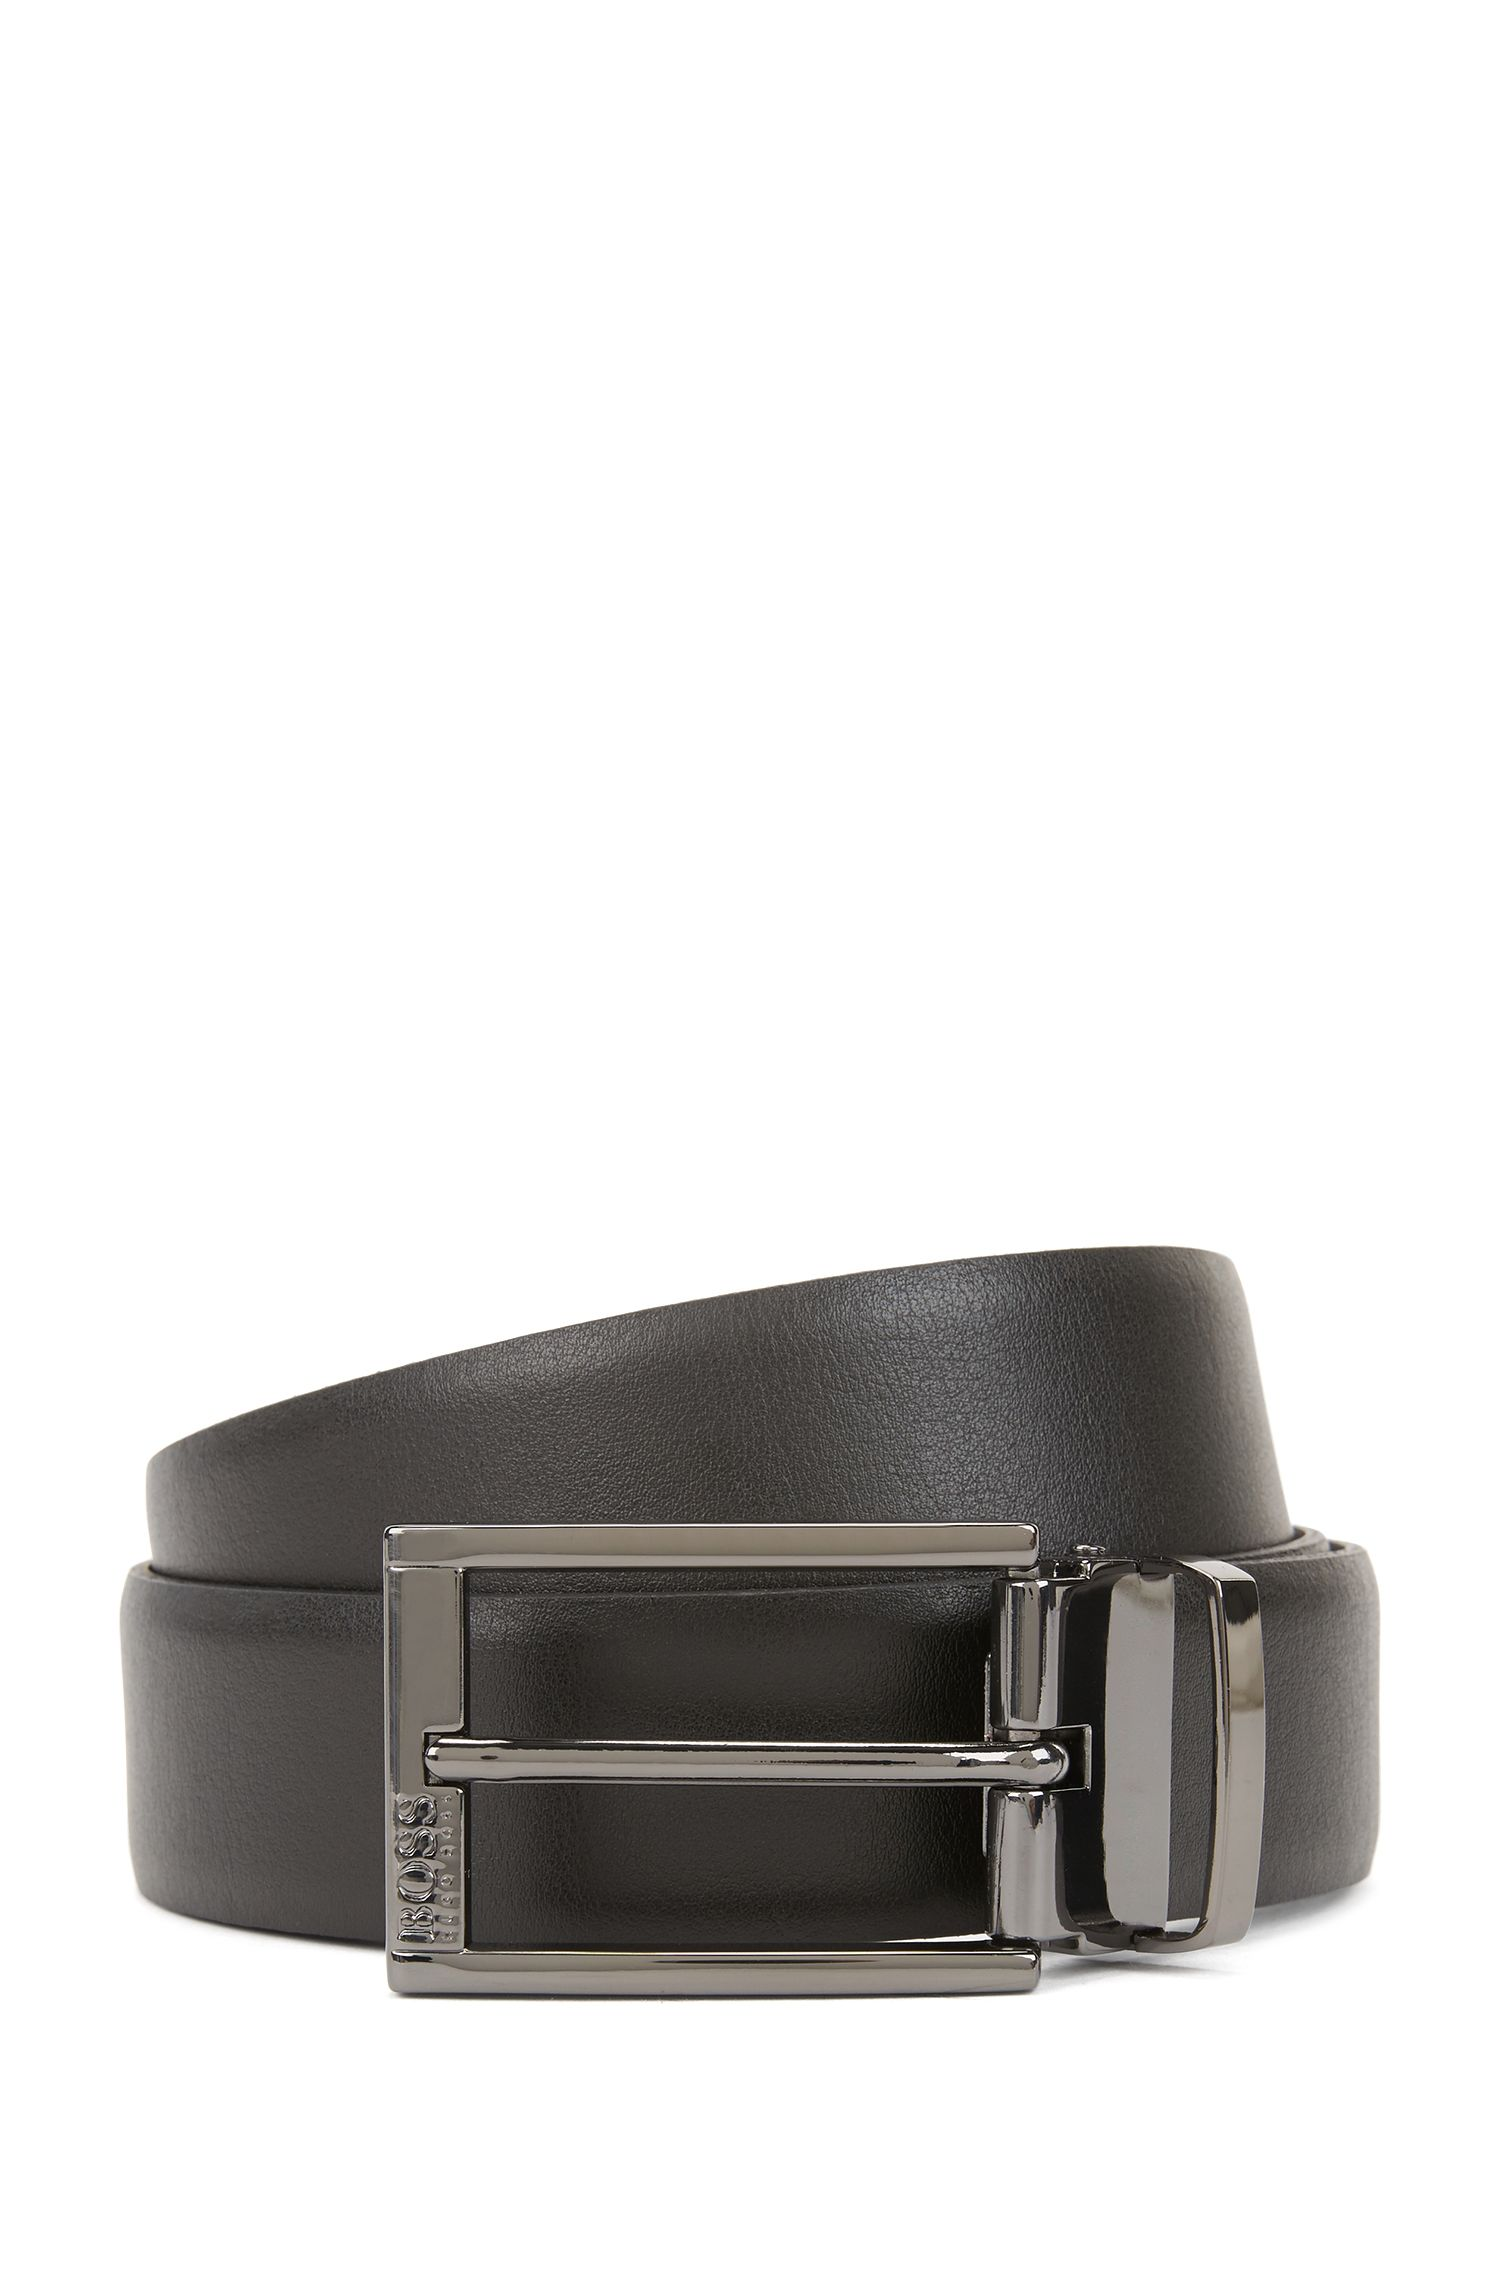 Reversible two-tone leather belt with gunmetal hardware, Black